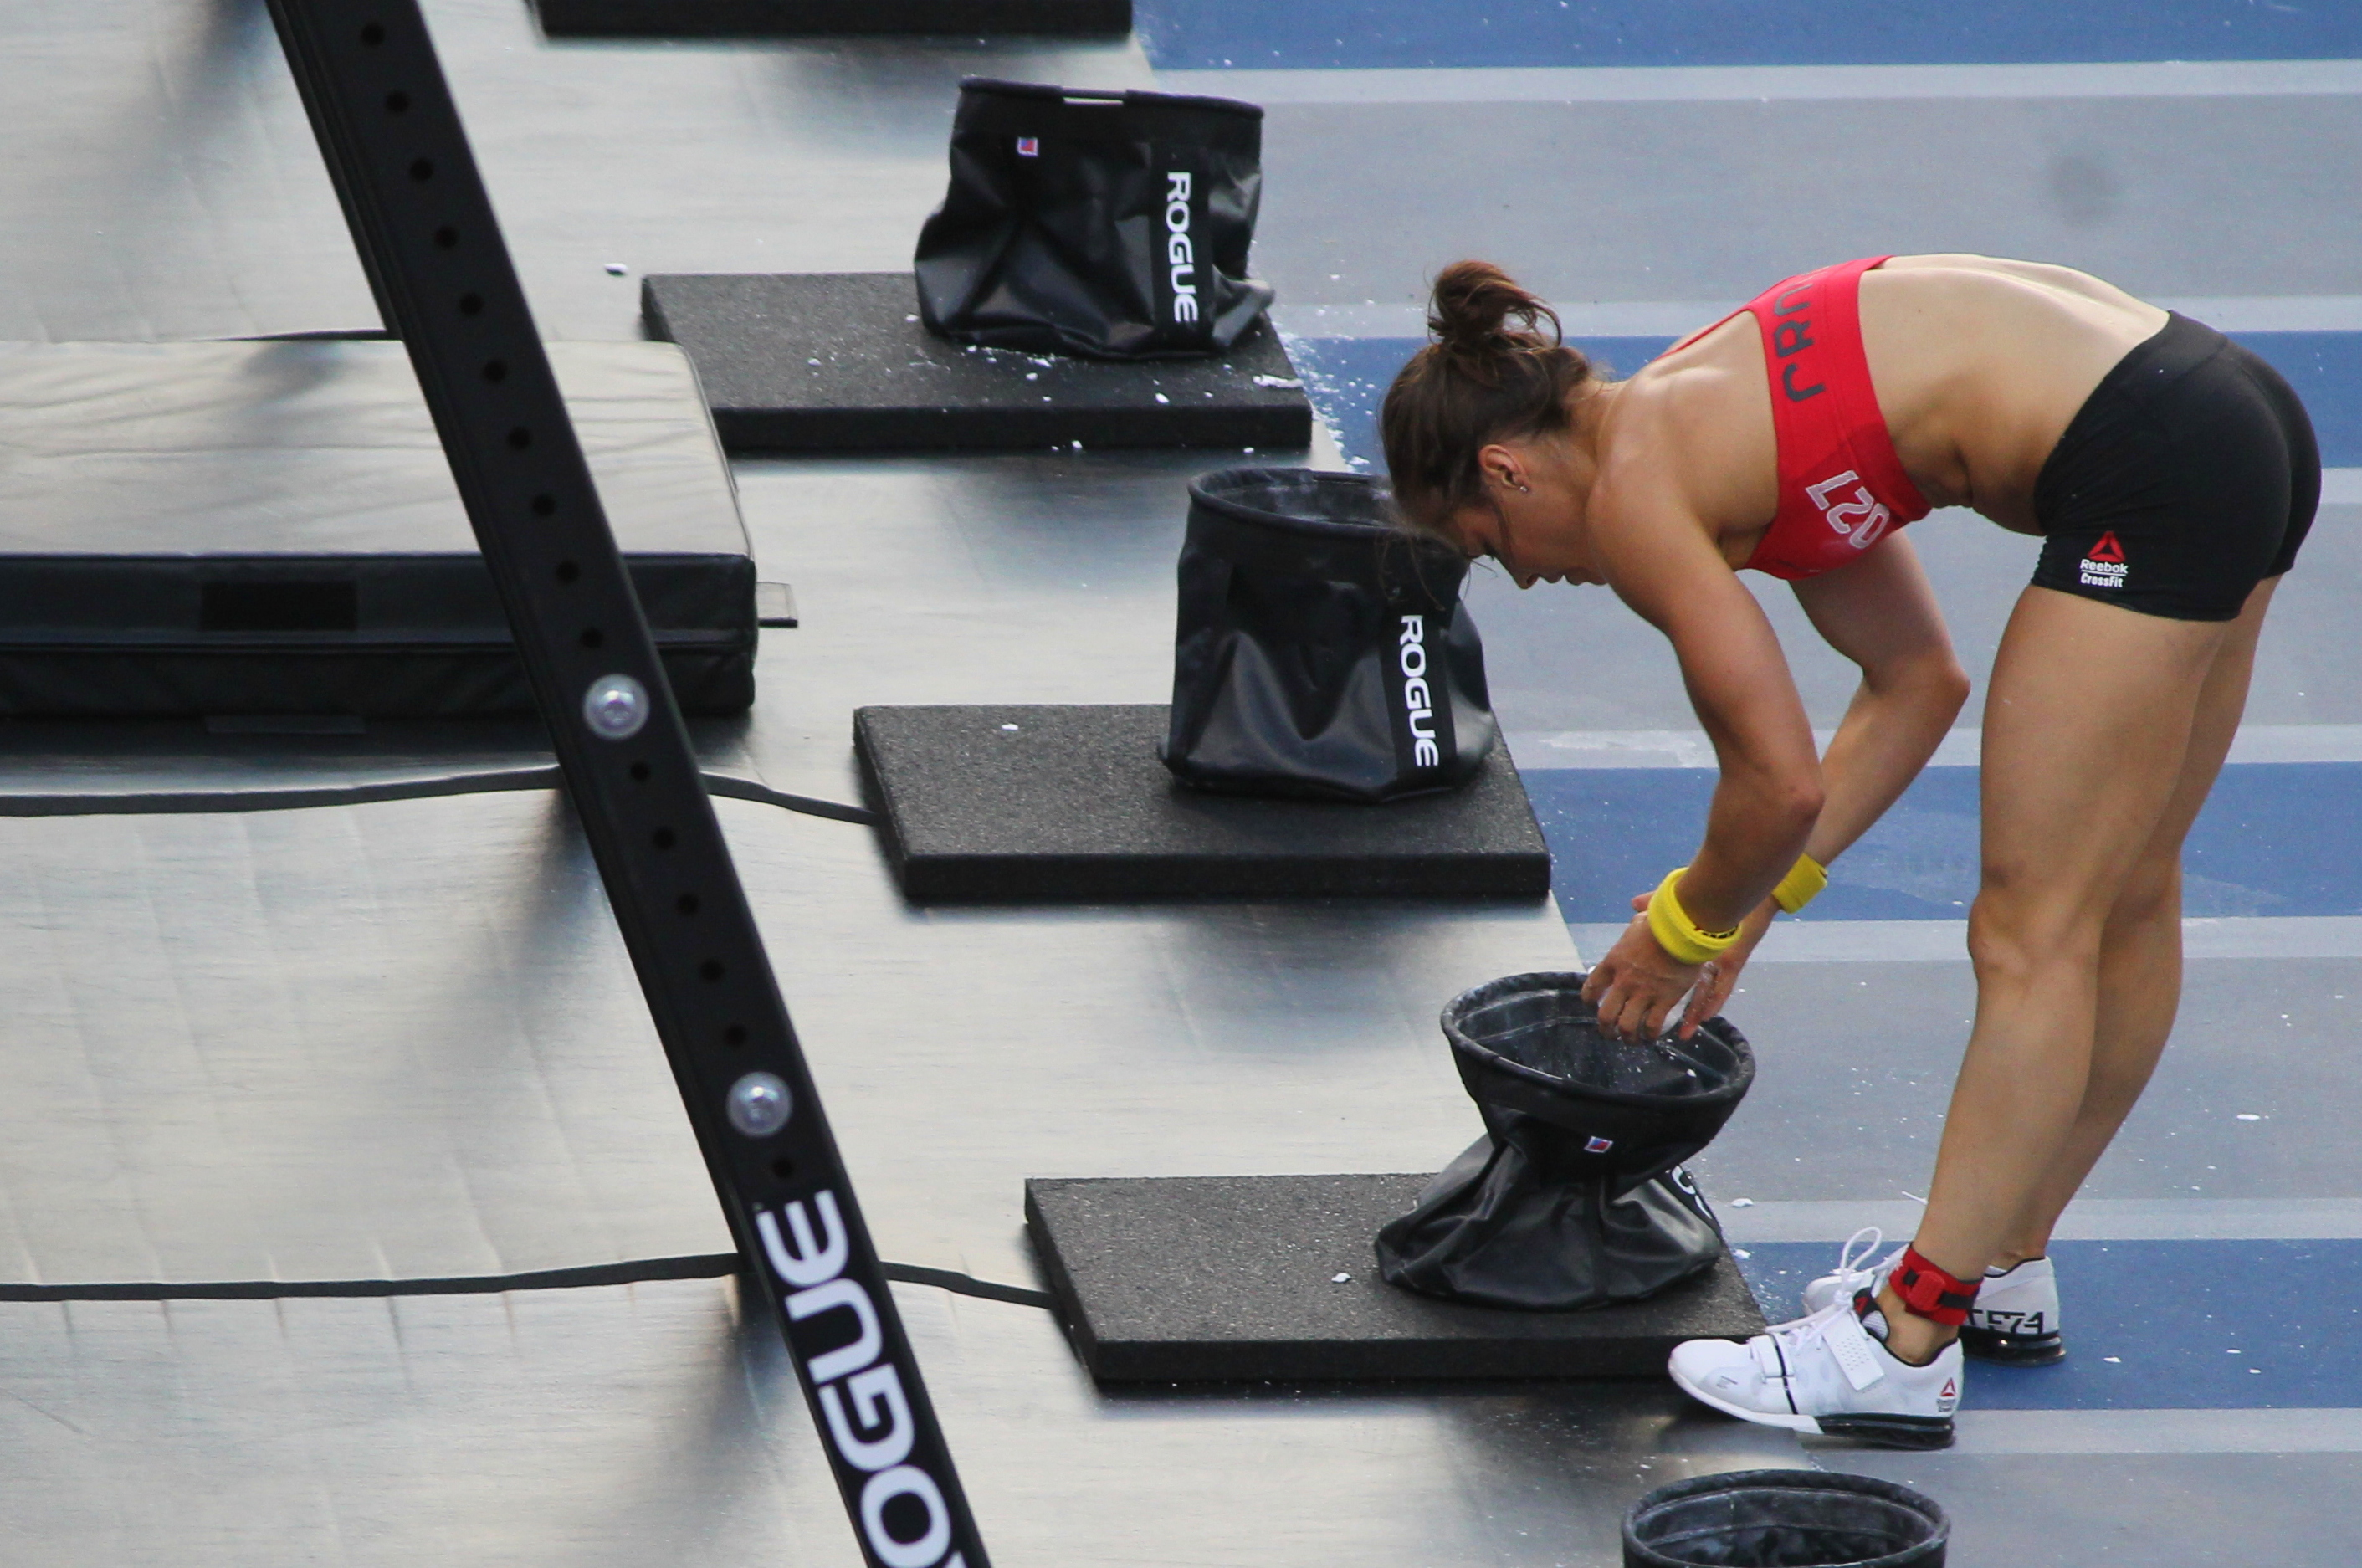 Julie Foucher before jumping on the last bar.